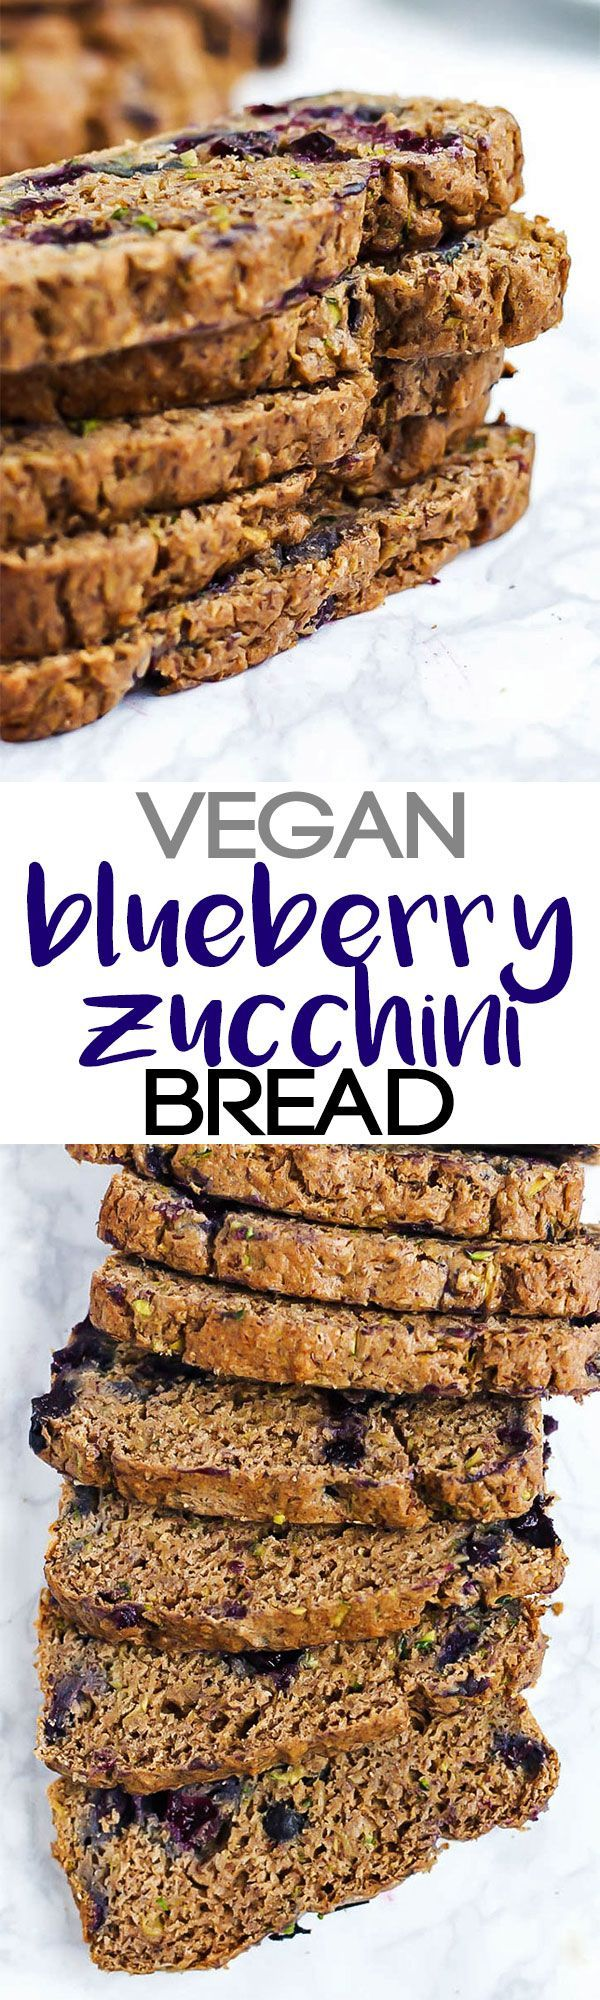 Enjoy this whole-grain Vegan Blueberry Zucchini Bread for a nutritious…